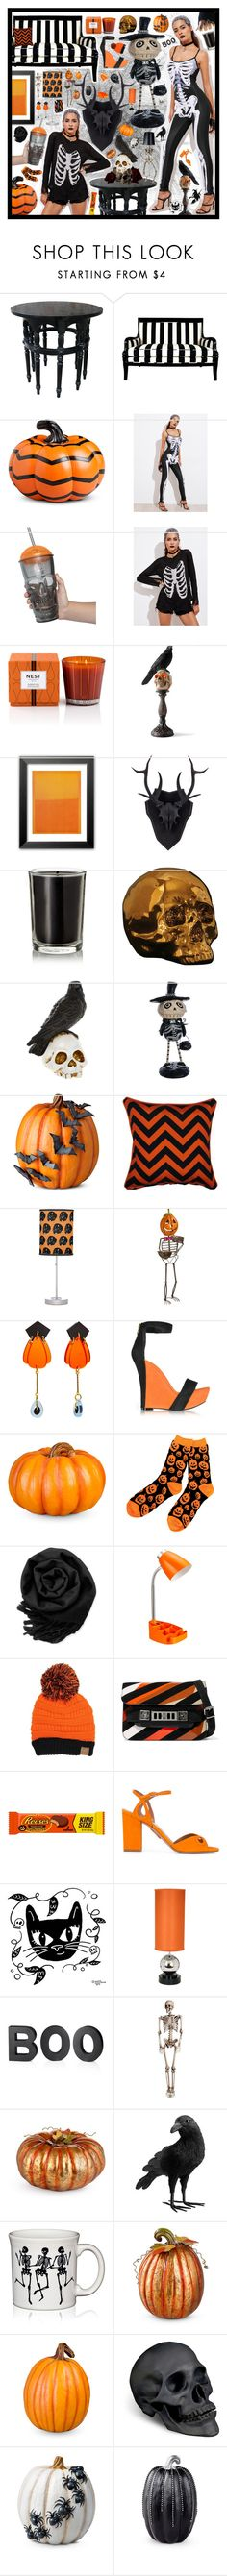 """""""Halloween Party!"""" by beanpod ❤ liked on Polyvore featuring nOir, Improvements, Nest Fragrances, Grandin Road, Coqui Coqui, Seletti, Allstate Floral, National Tree Company, Balmain and Gearonic"""